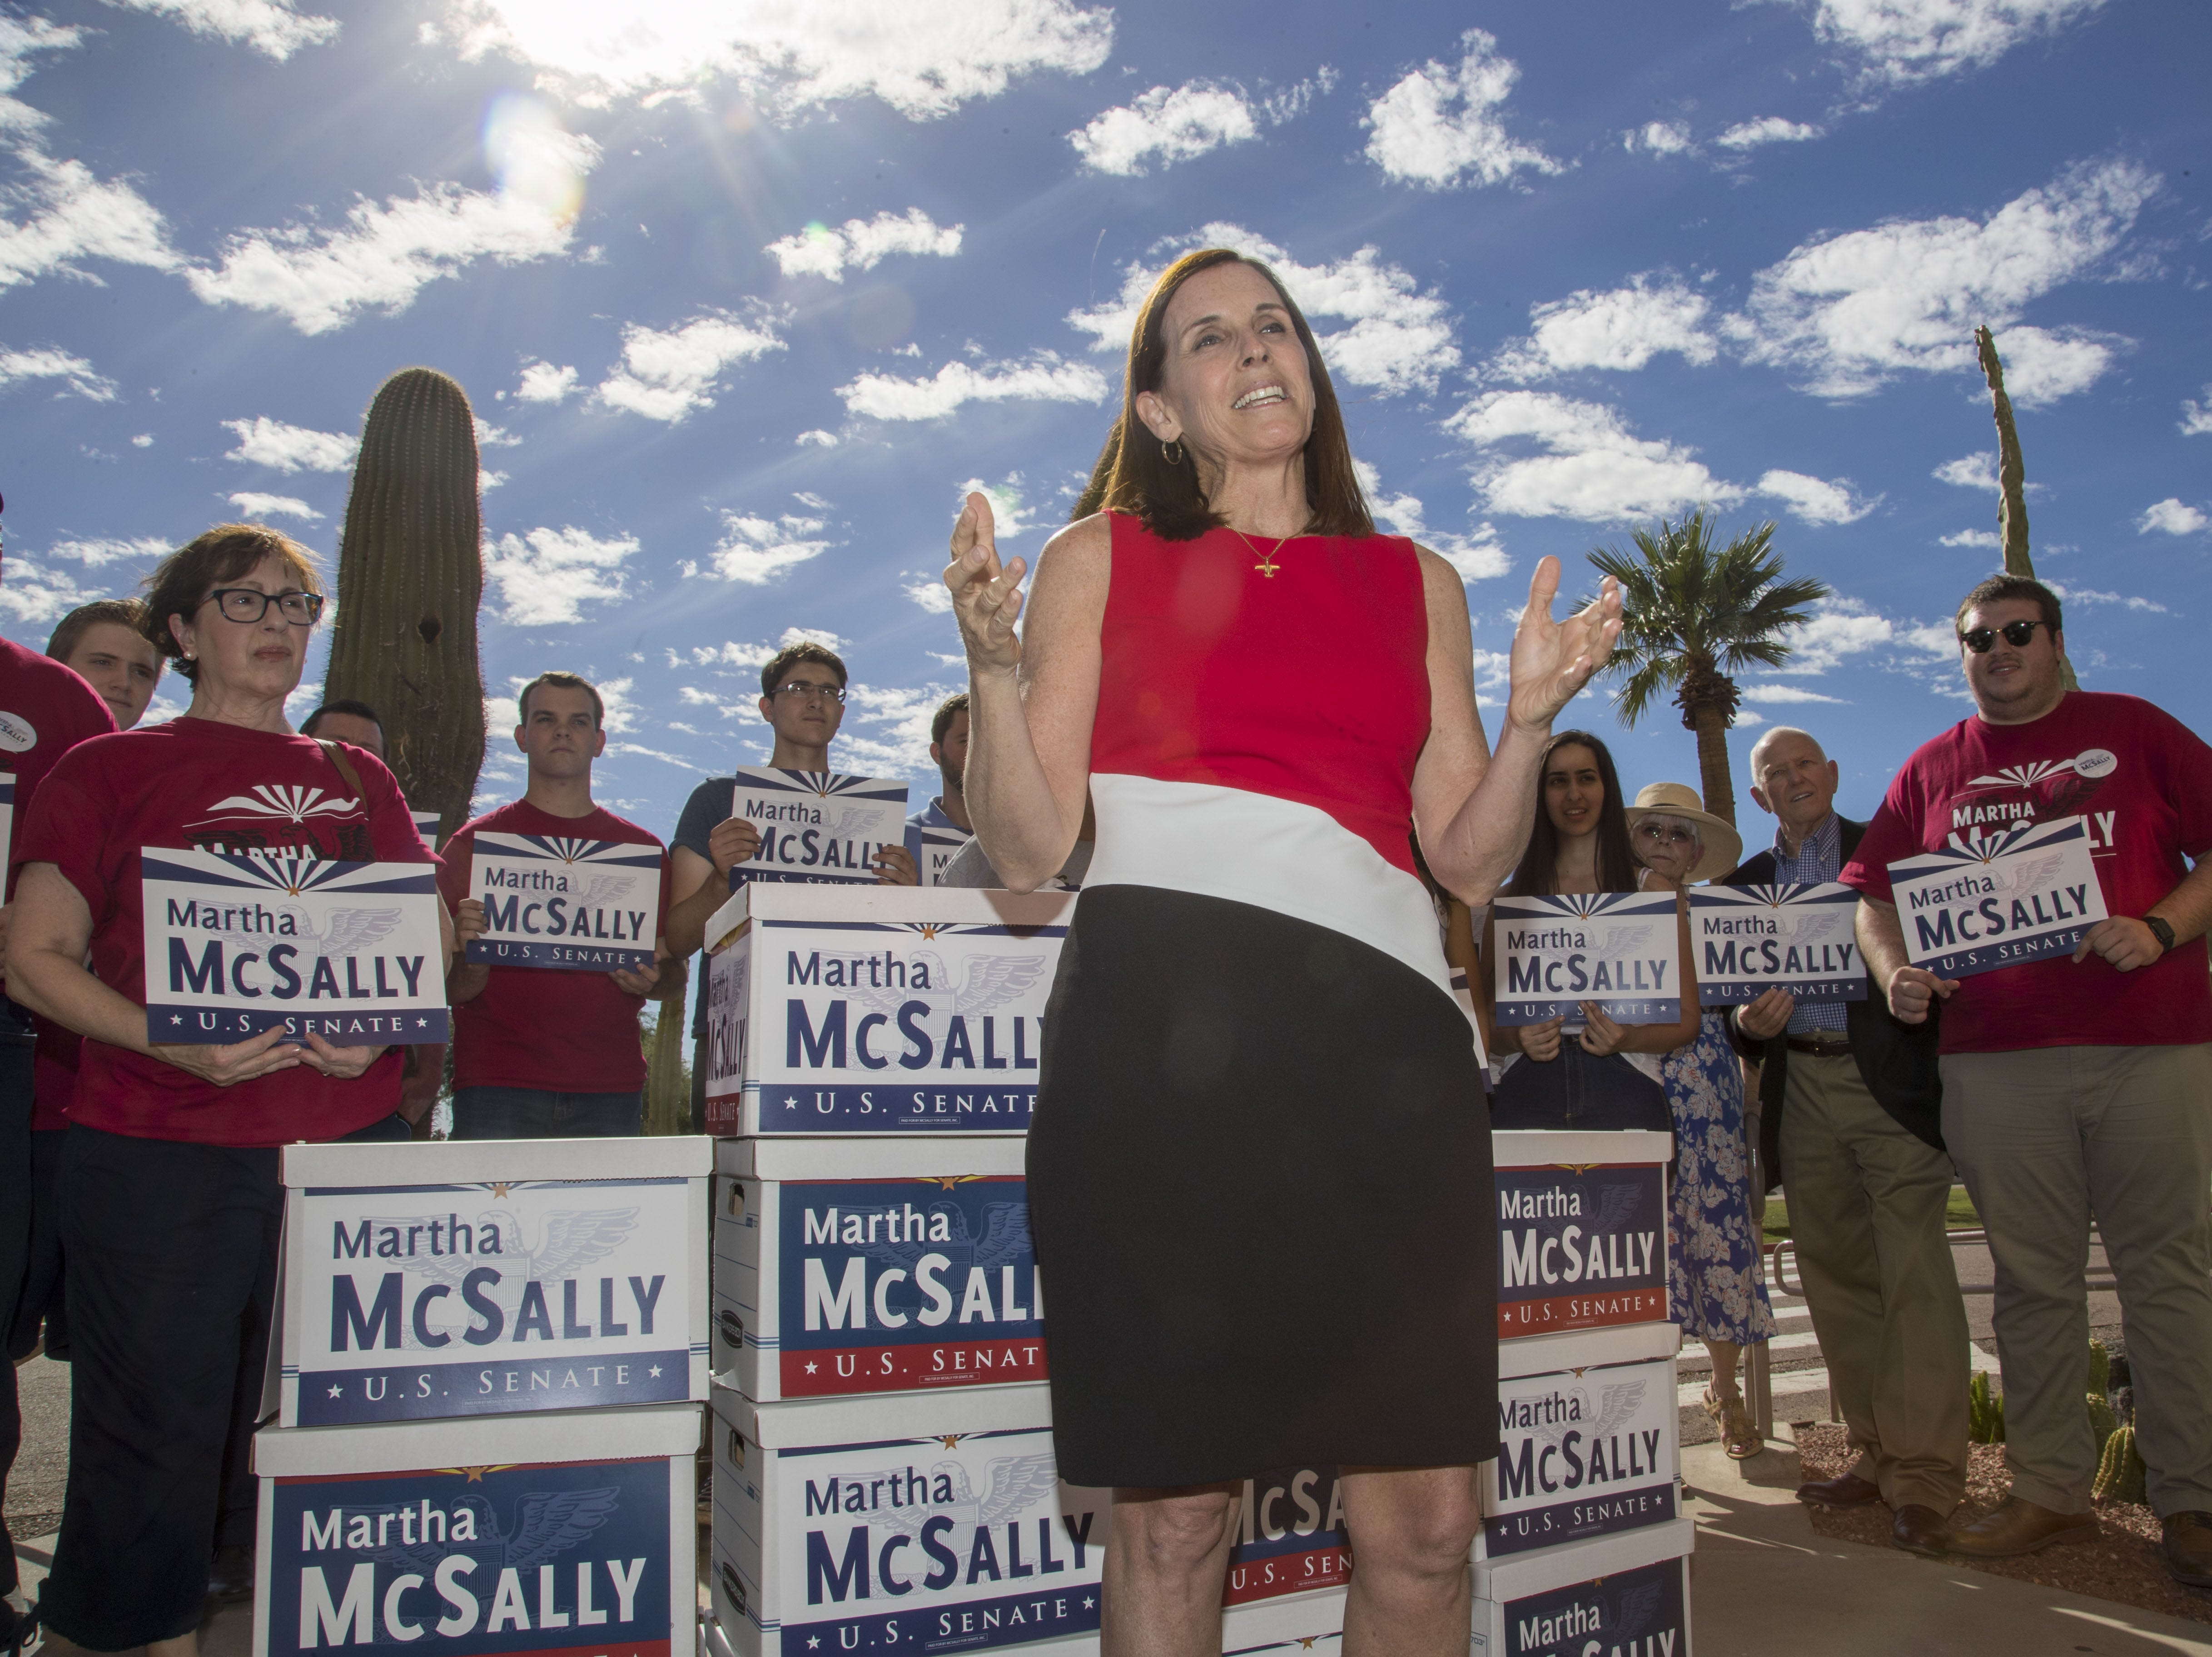 U.S. Rep. Martha McSally with her supporters file her signatures to appear on the ballot for U.S. Senate at Arizona Secretary of State's Office on Tuesday May 29, 2018.